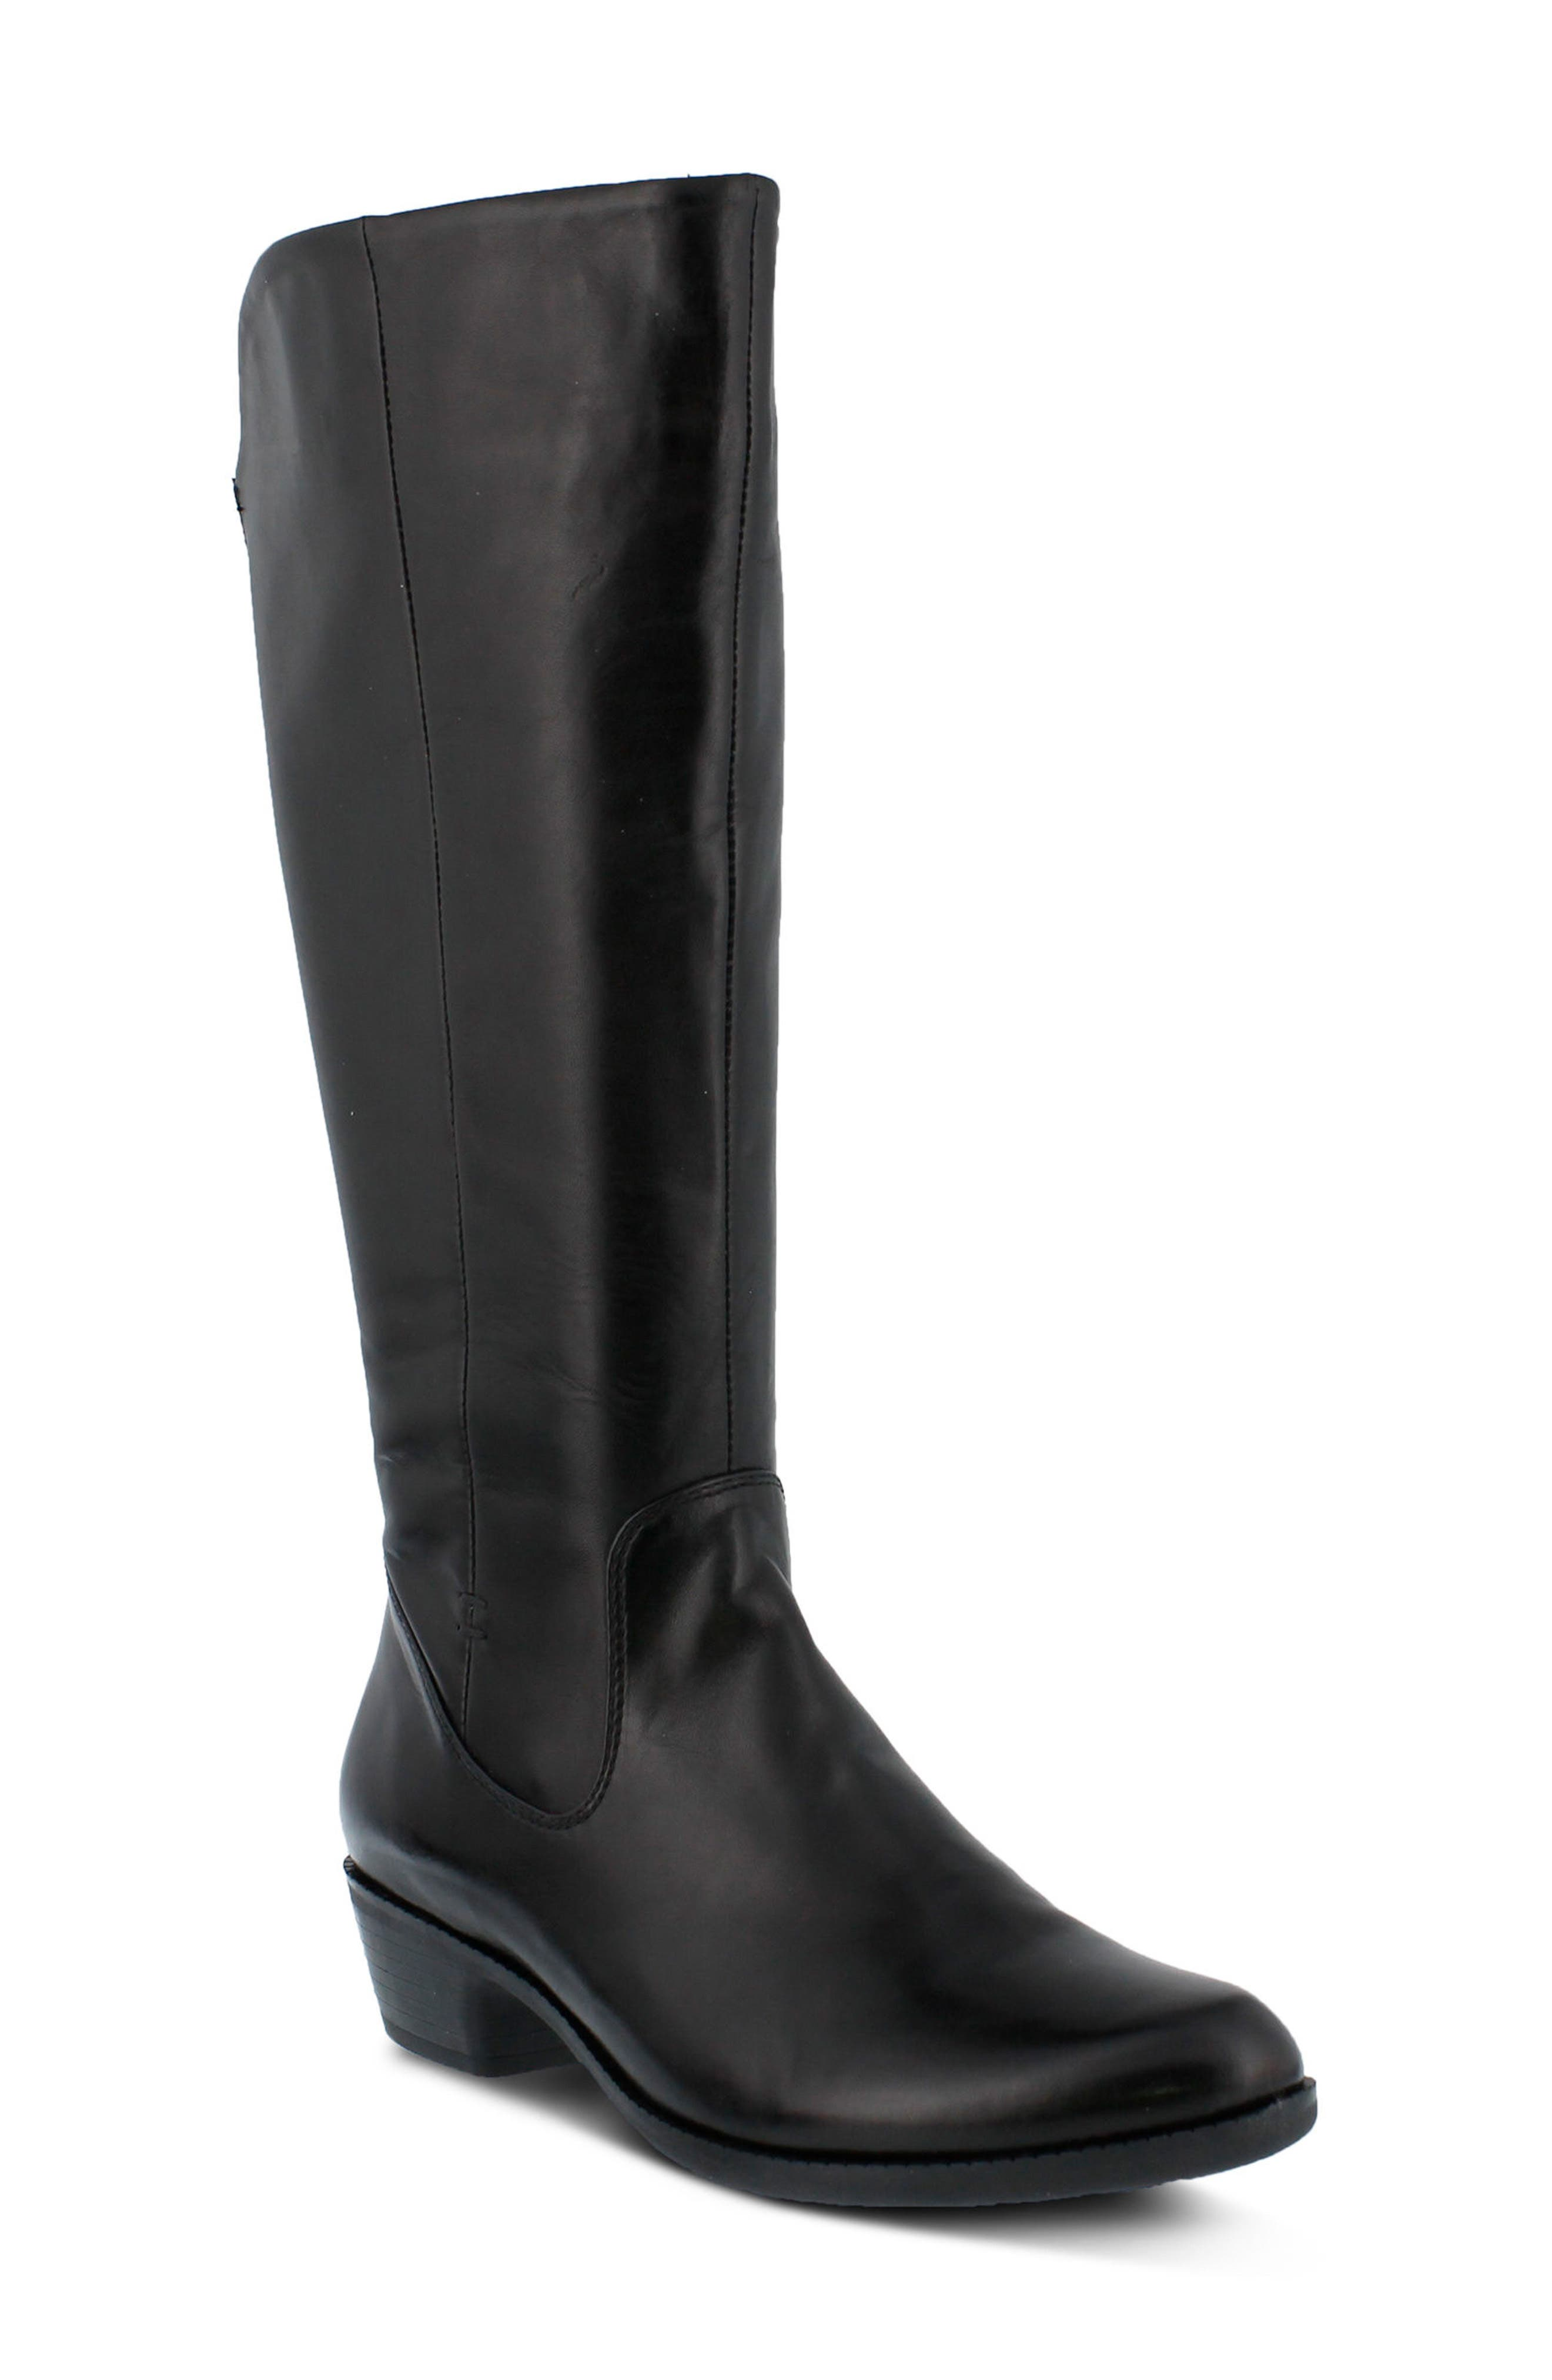 Bolah Tall Boot,                         Main,                         color, Black Leather